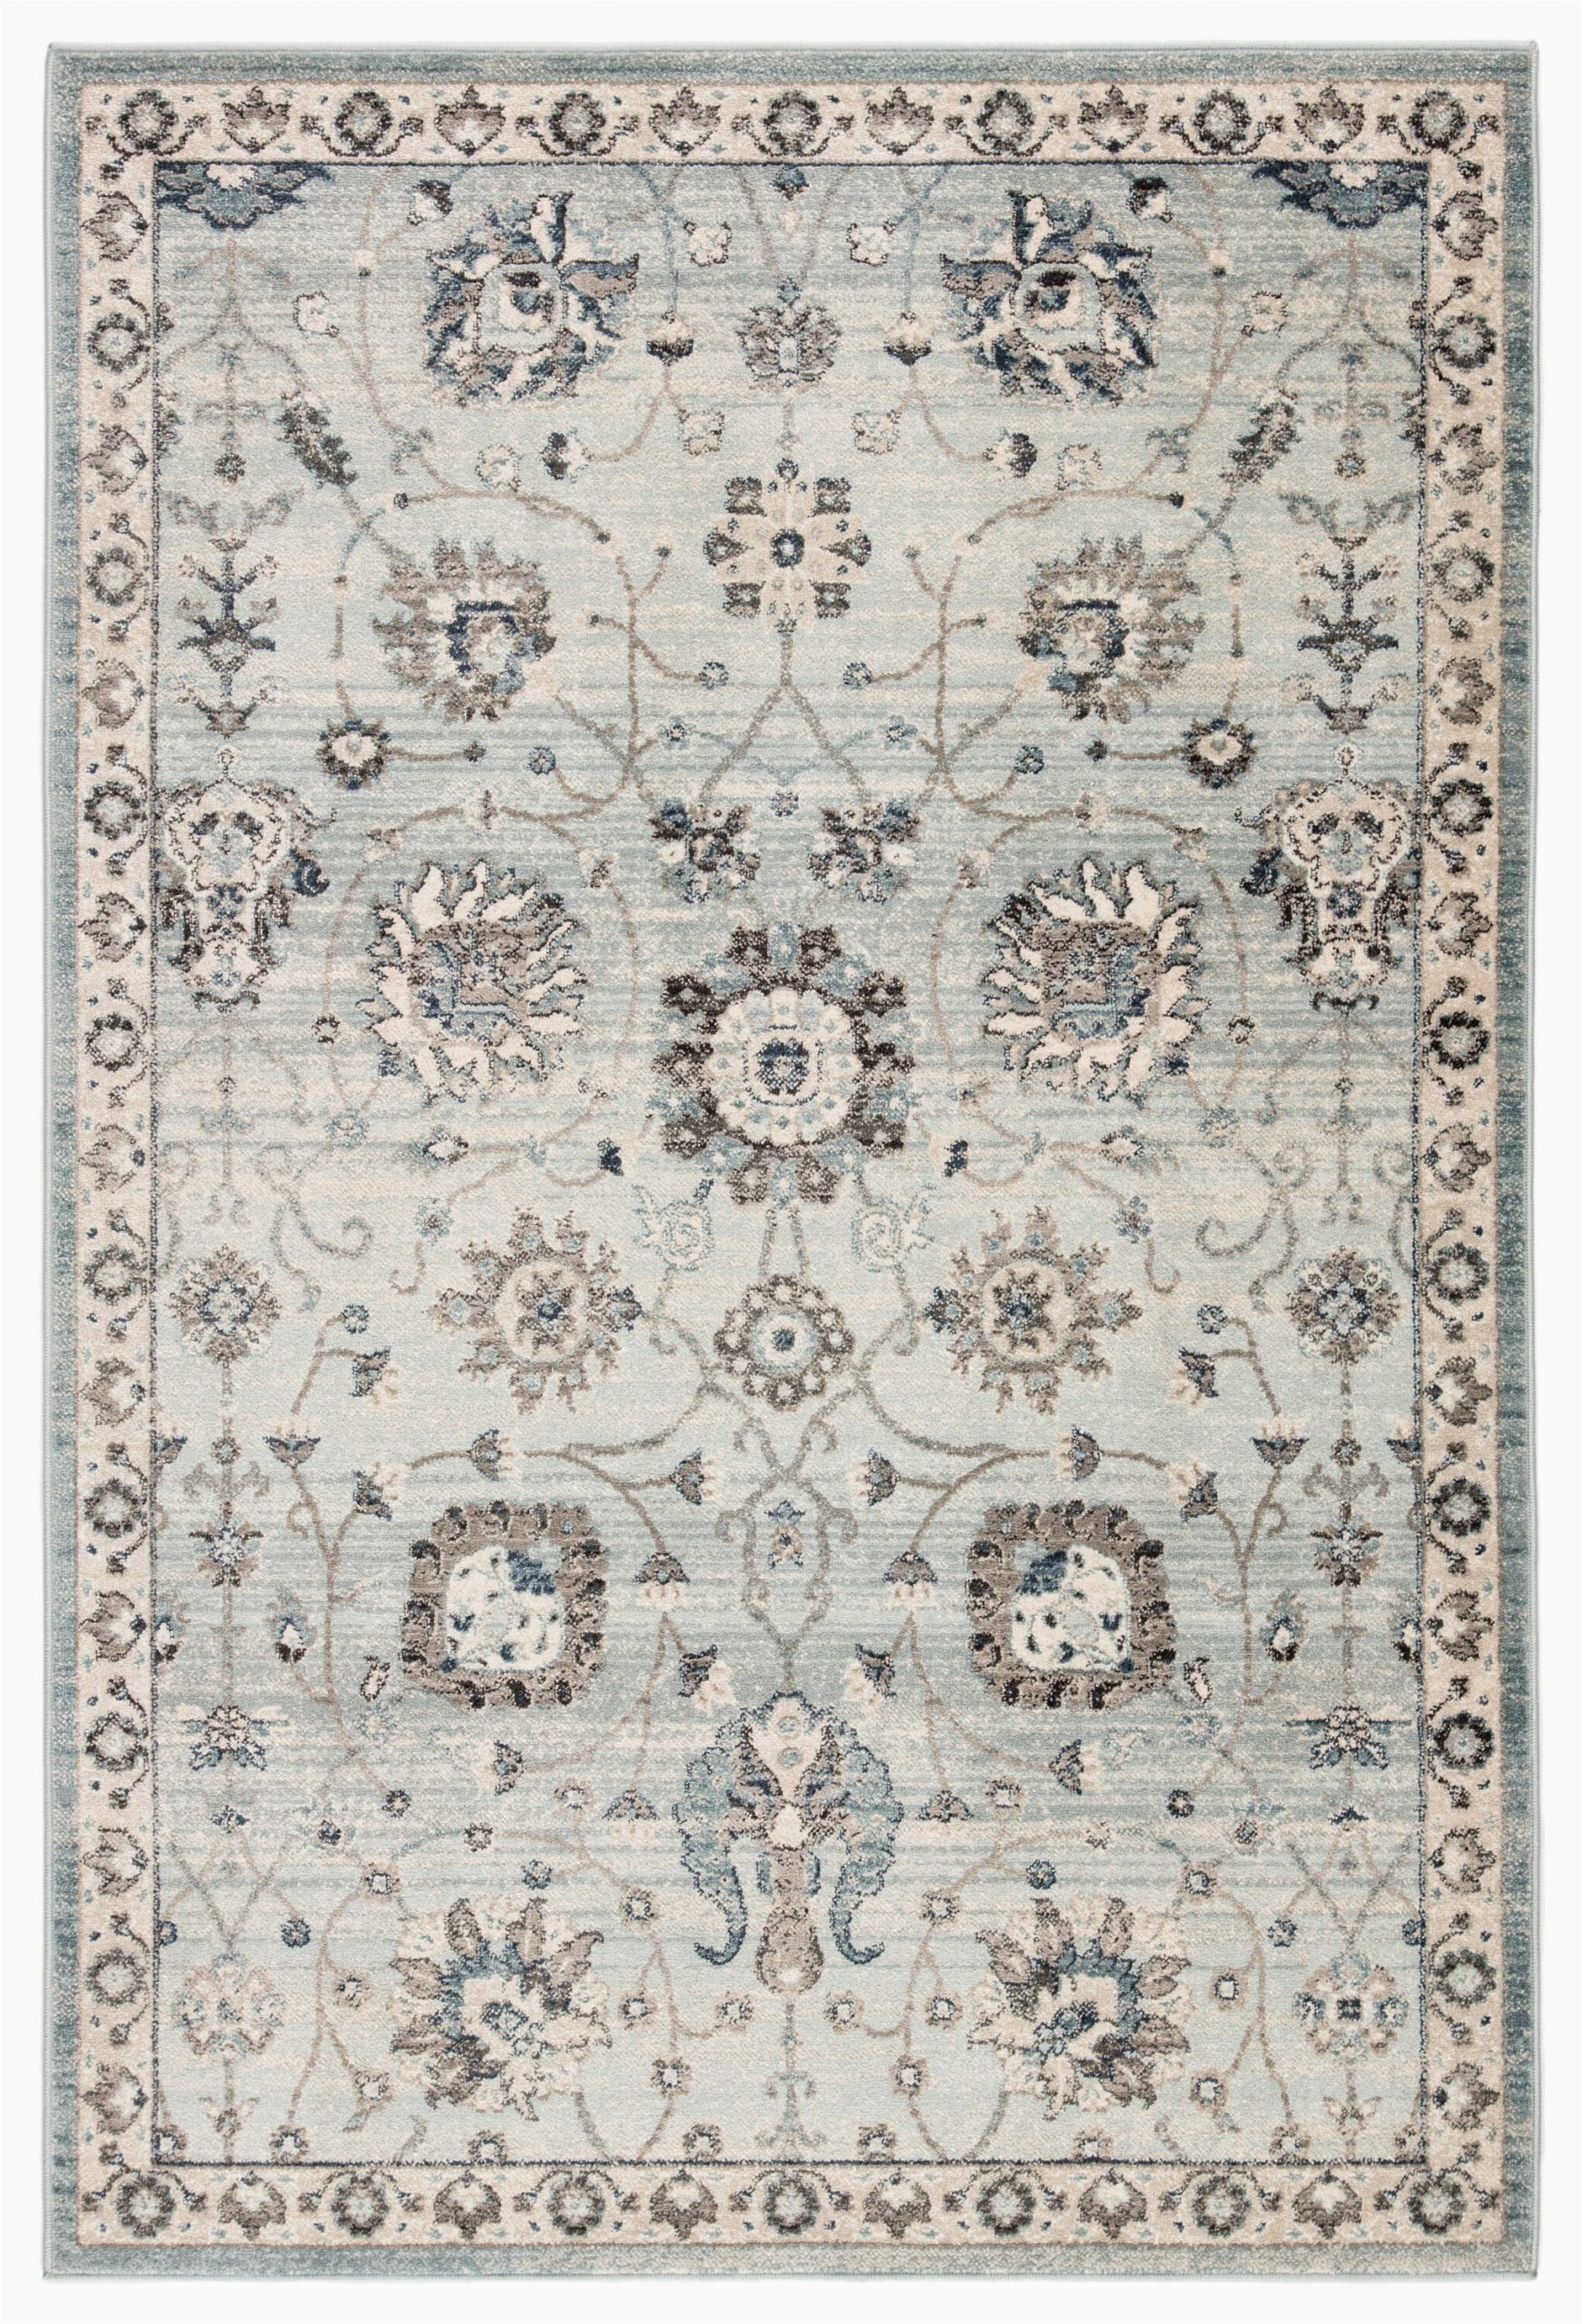 Blue Gray and Taupe area Rug Pharr oriental Light Blue Gray area Rug